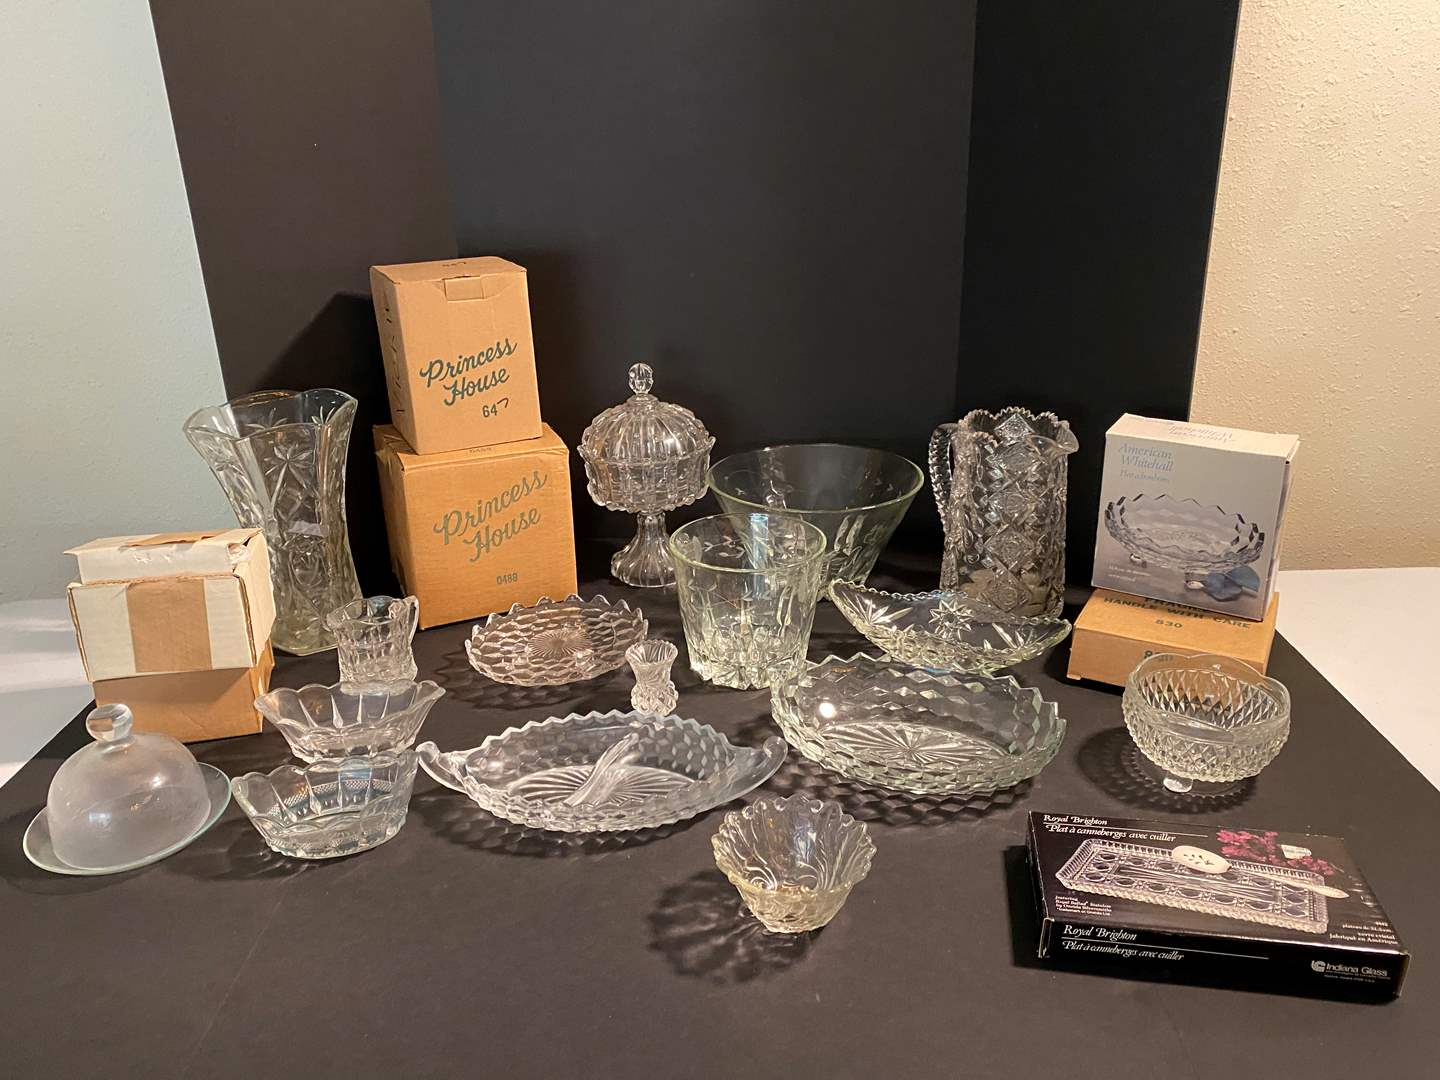 Lot # 49 - Collection of Crystal: Princess House, American Whitehall, Royal Brighton & More.. (main image)